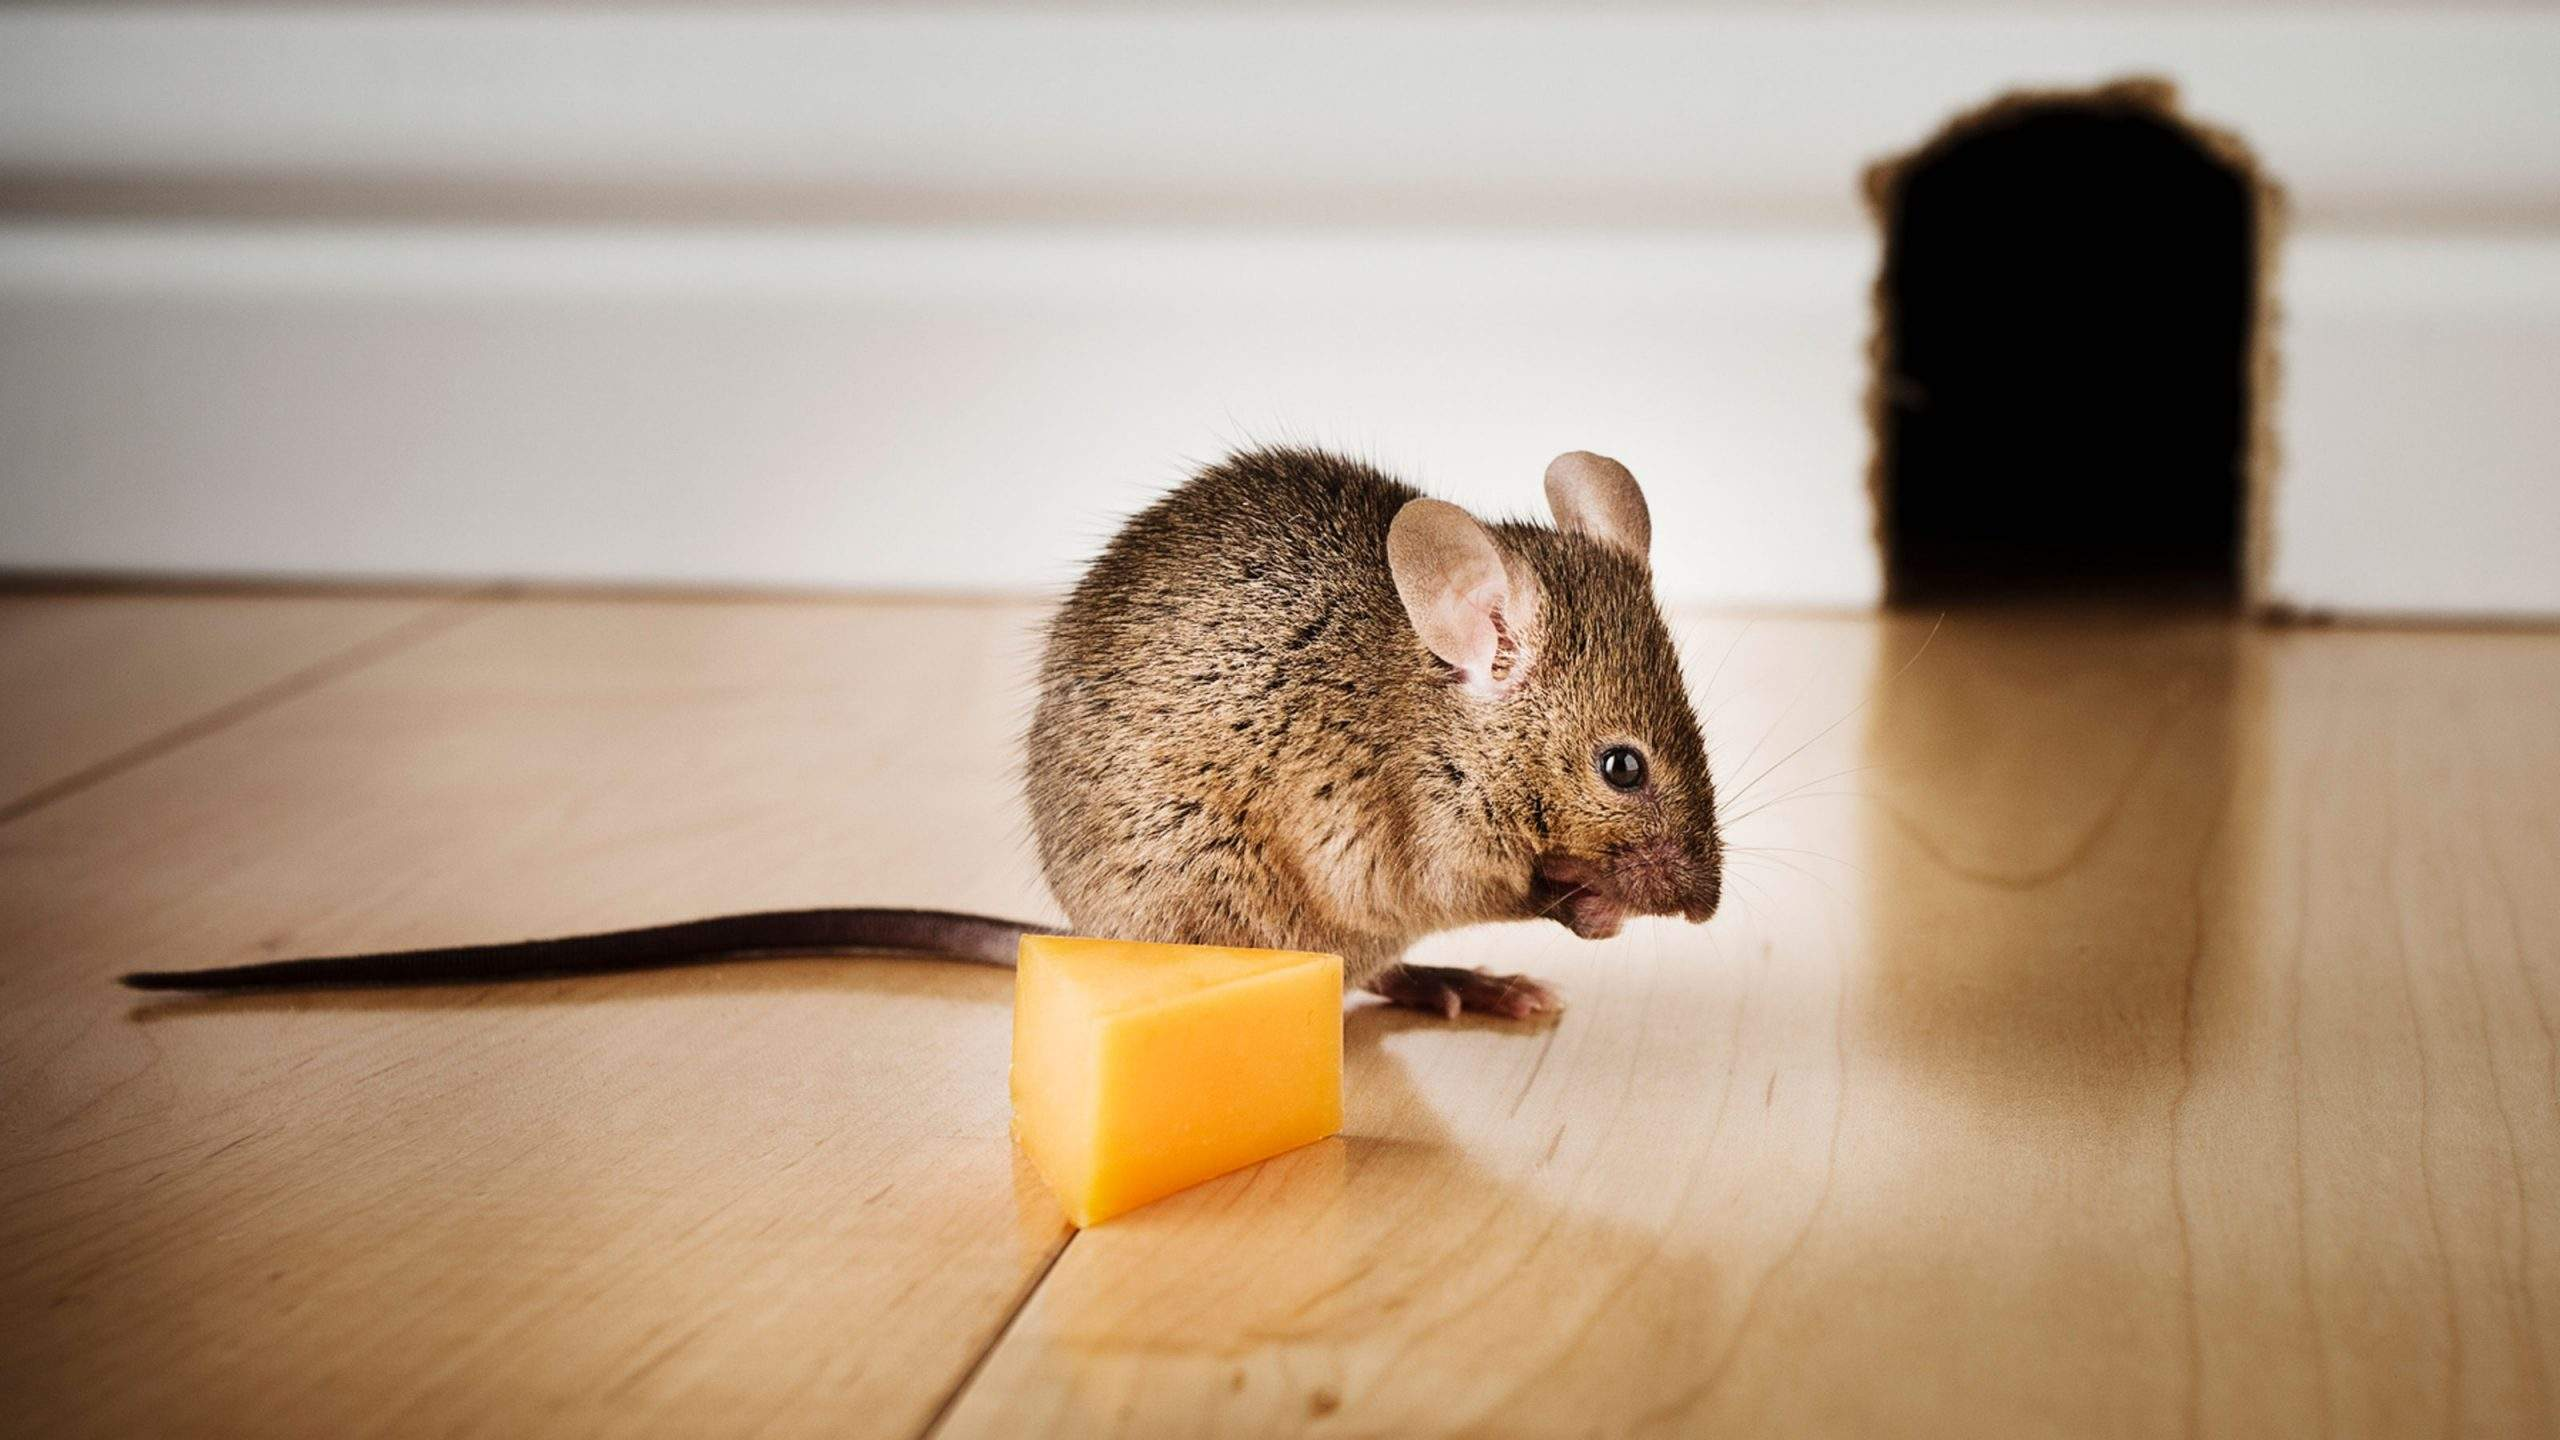 7 ways you can get rid of mice from your home